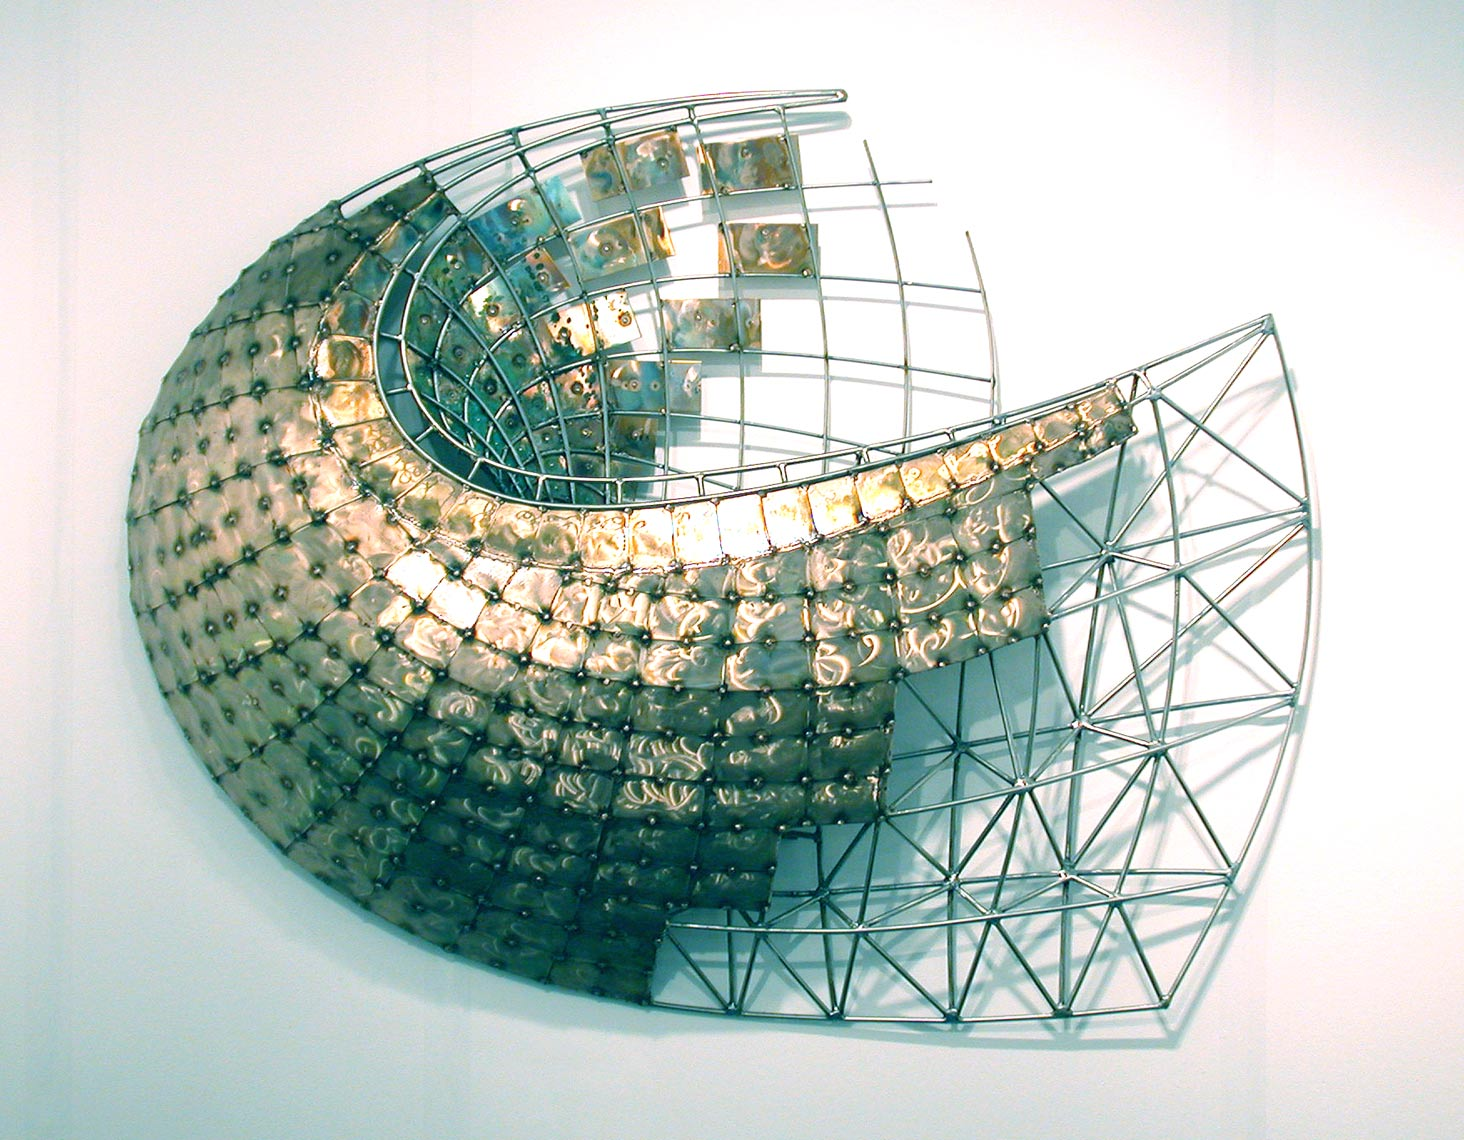 Cerebral-Vortex a bronze and stainless steel wall sculpture by Peter Diepenbrock